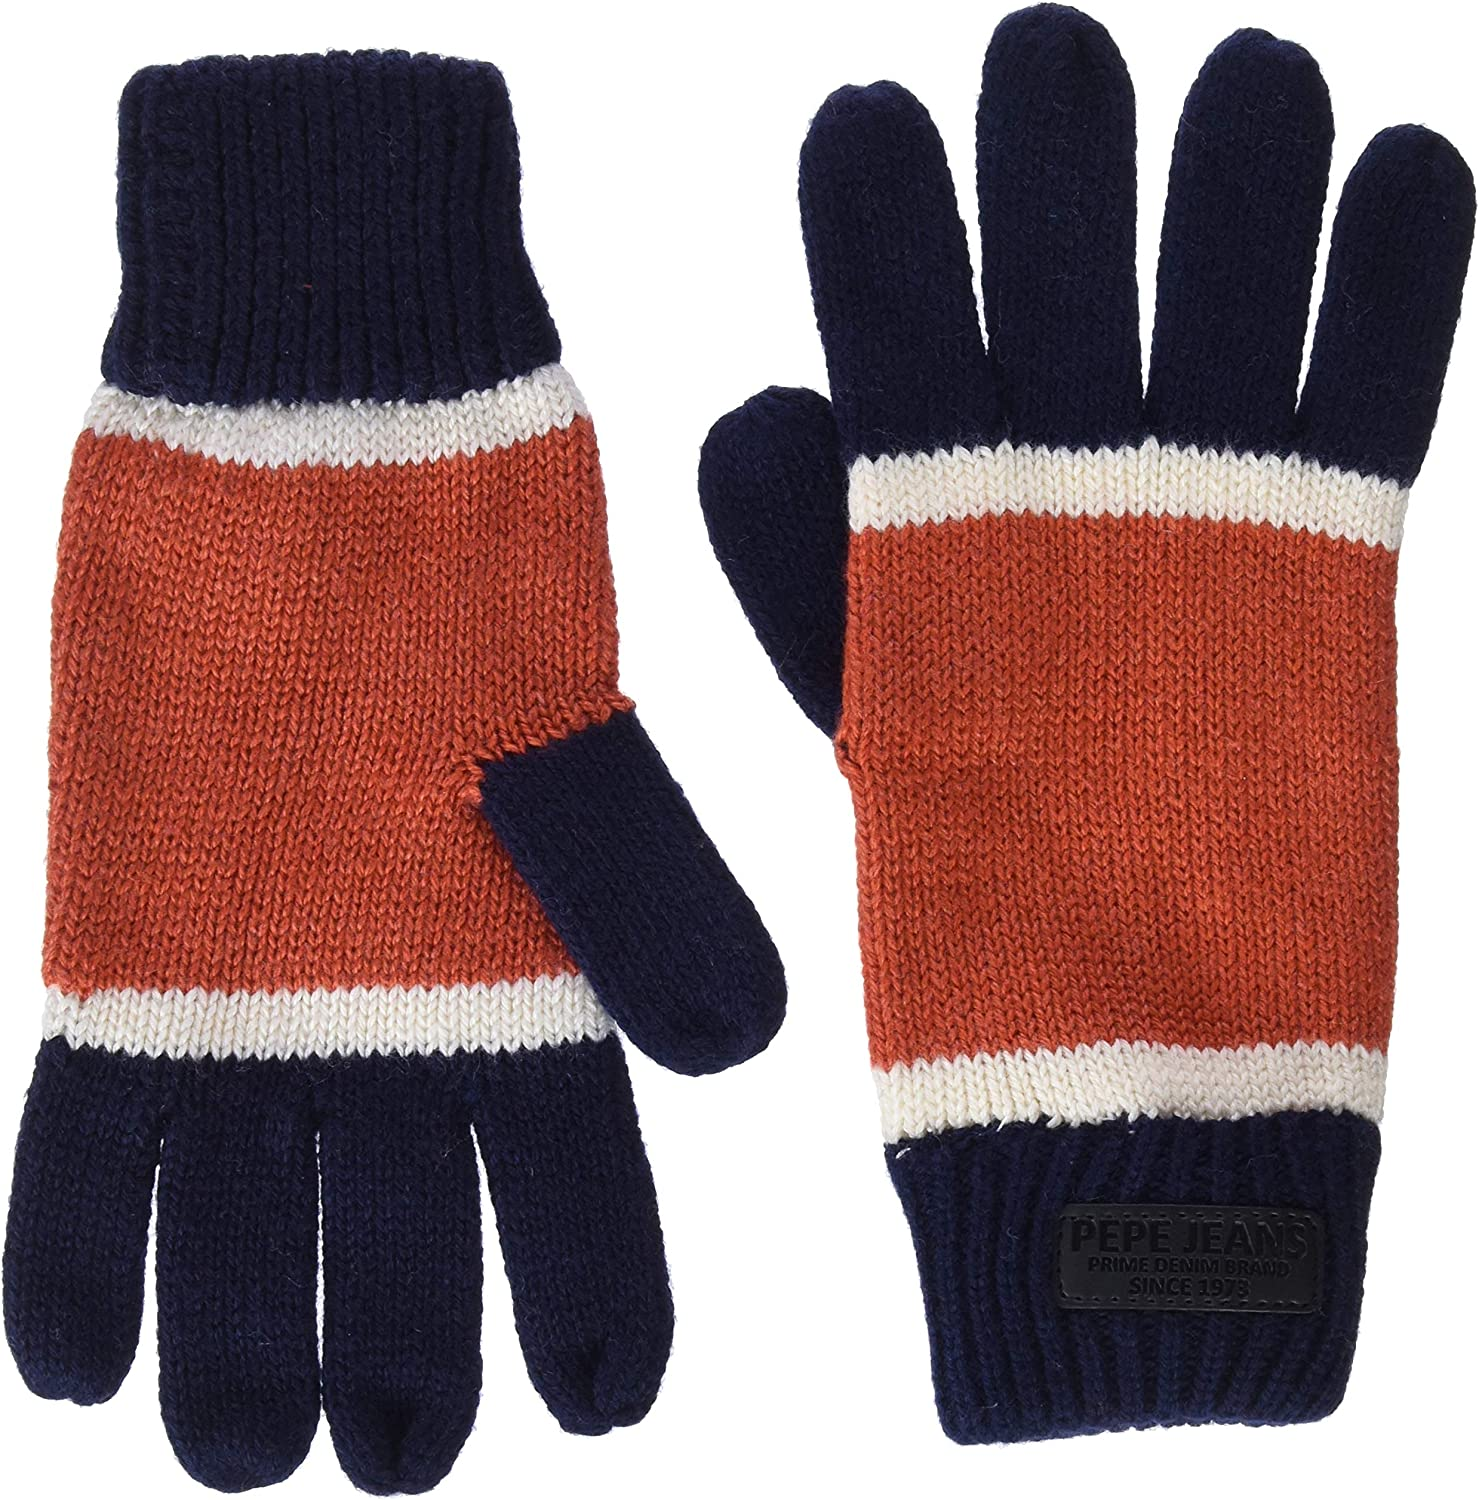 Pepe Jeans Boys Gloves